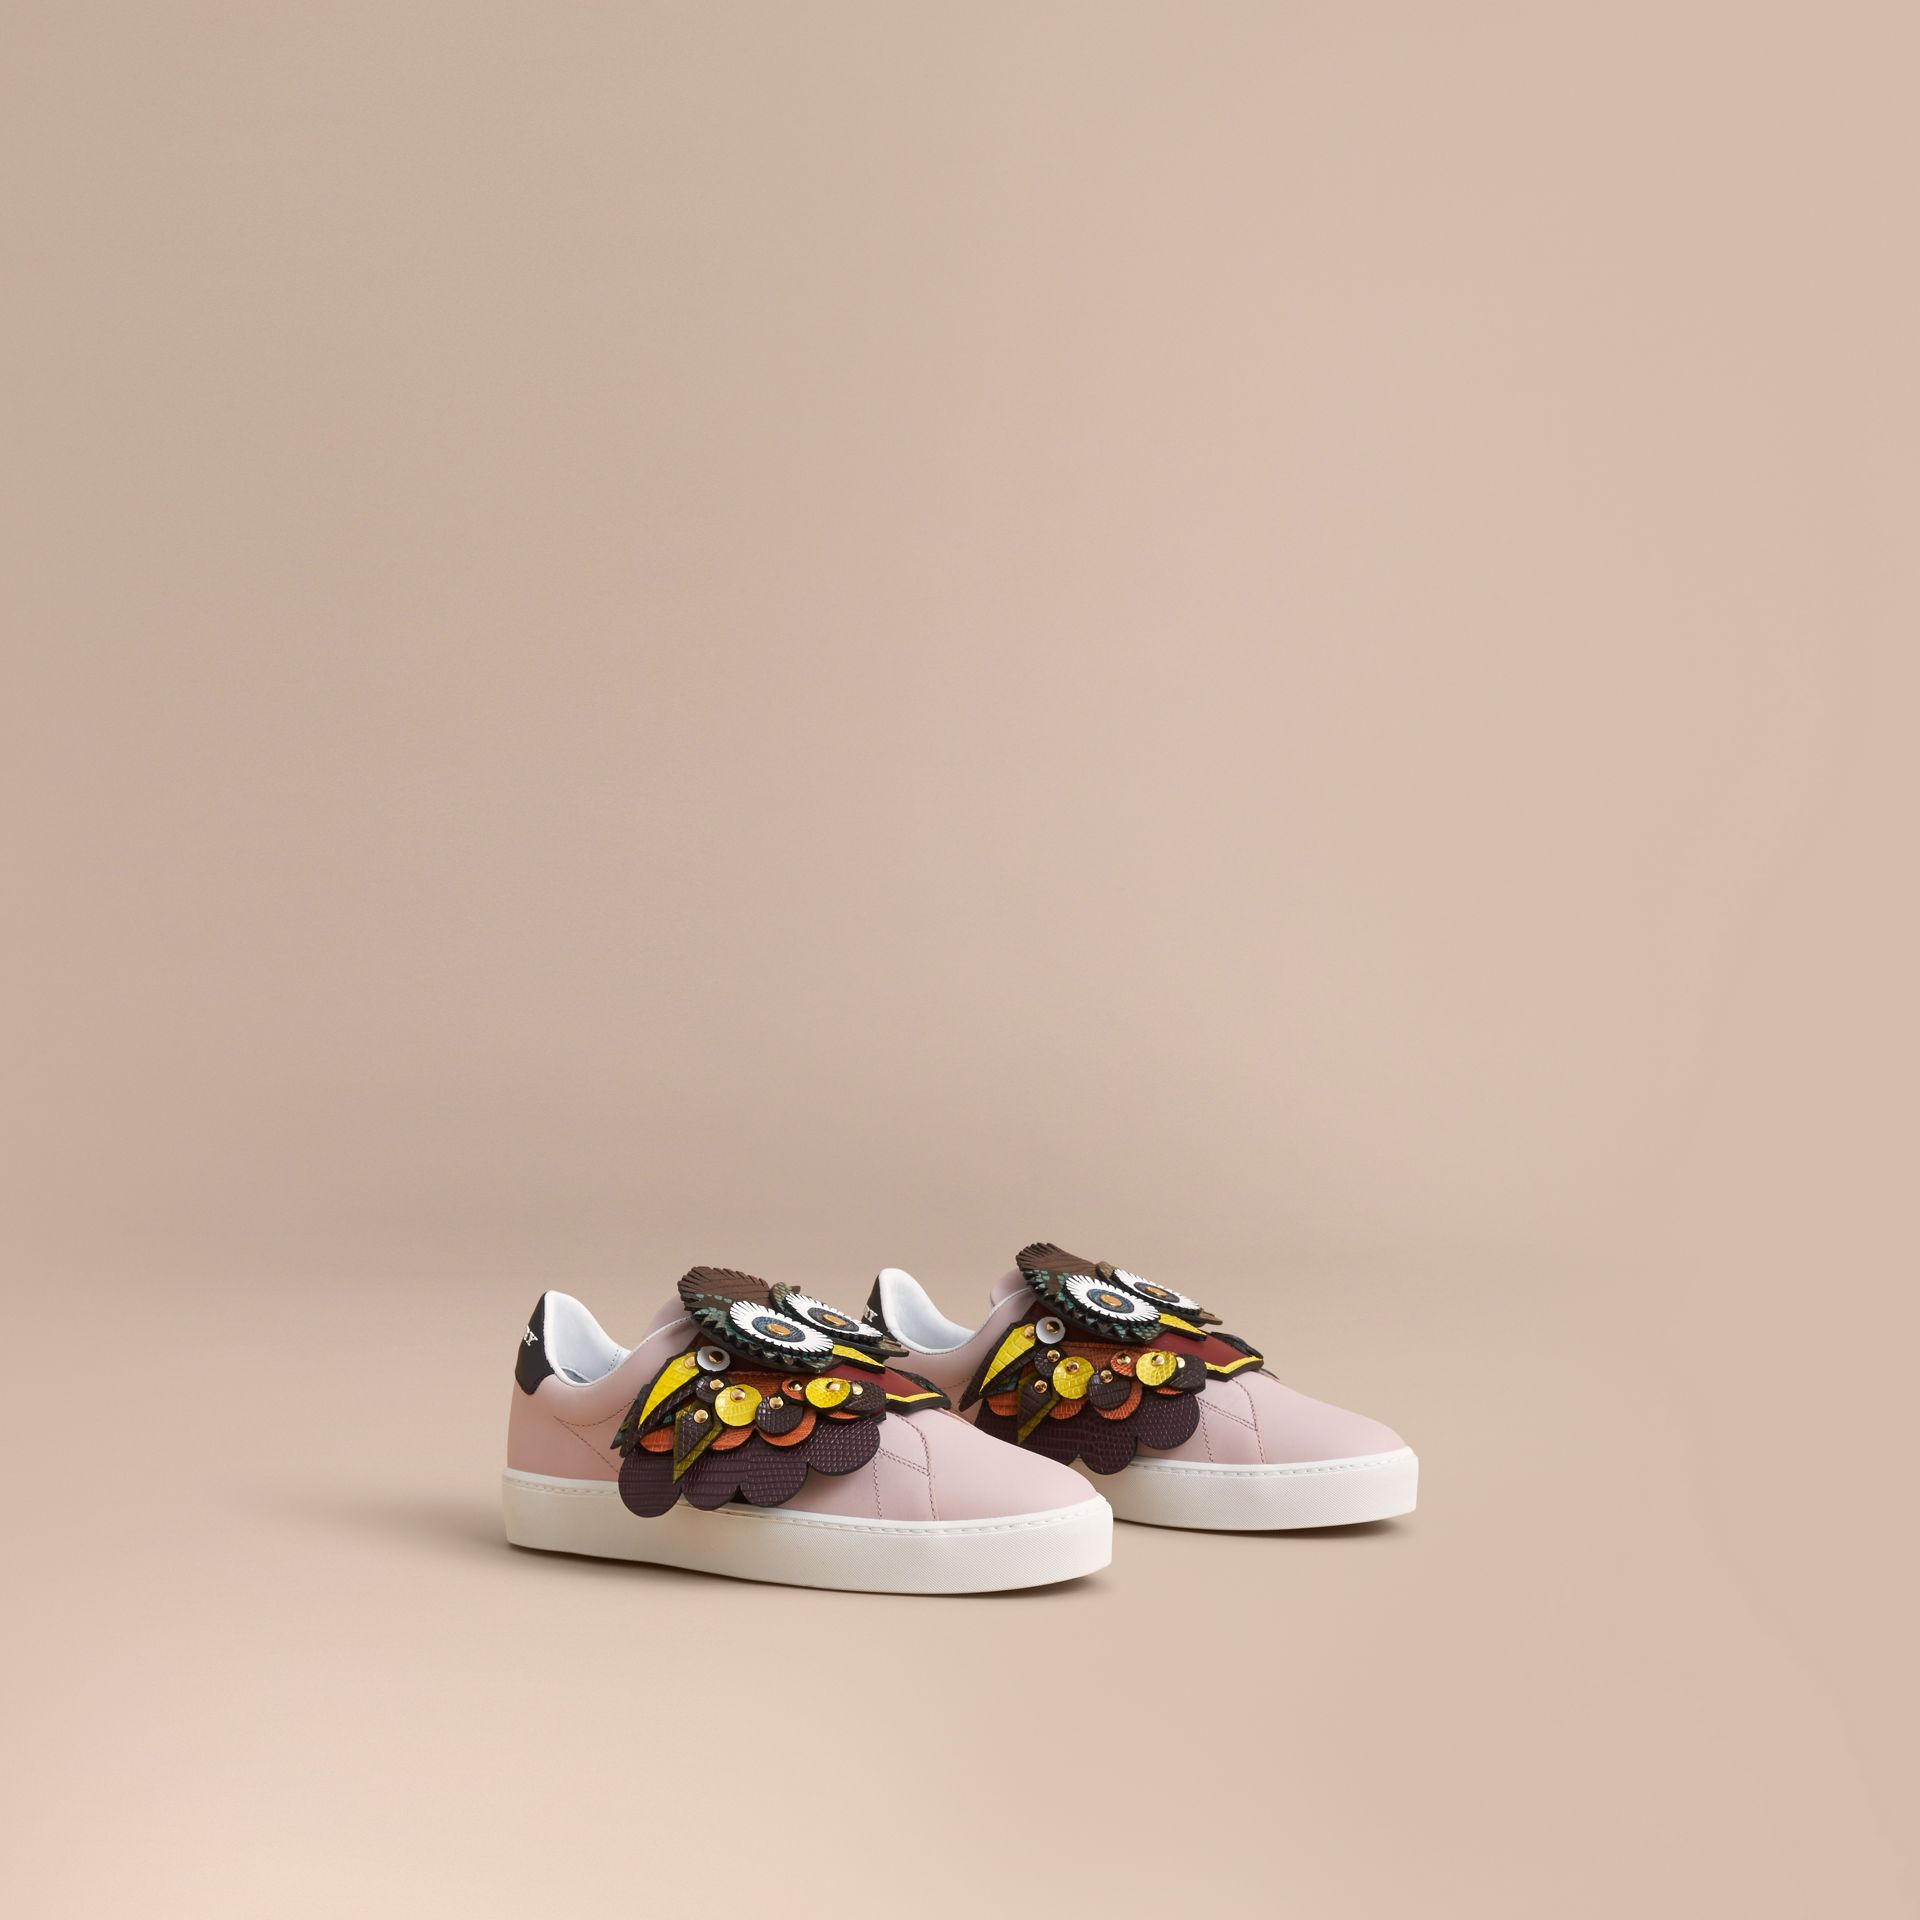 Beasts Motif Leather Slip-on Trainers in Ivory Pink - Women | Burberry - gallery image 1